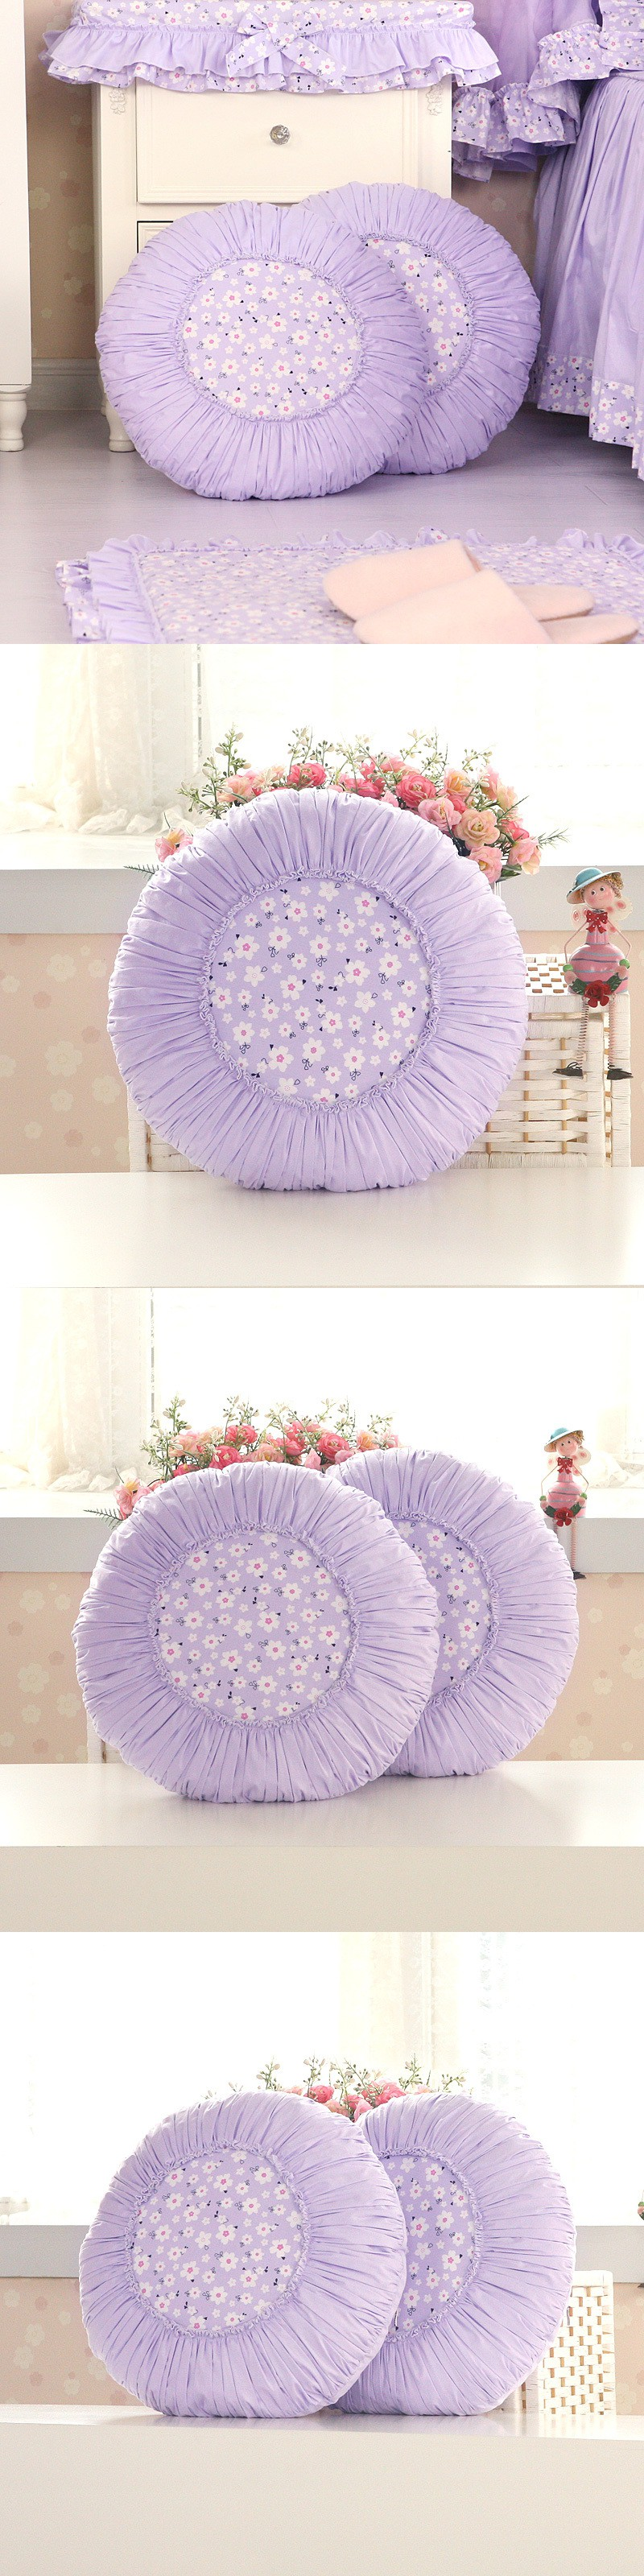 luxury 45cm round seat cushions chairs lumbar pillow decorate sofa